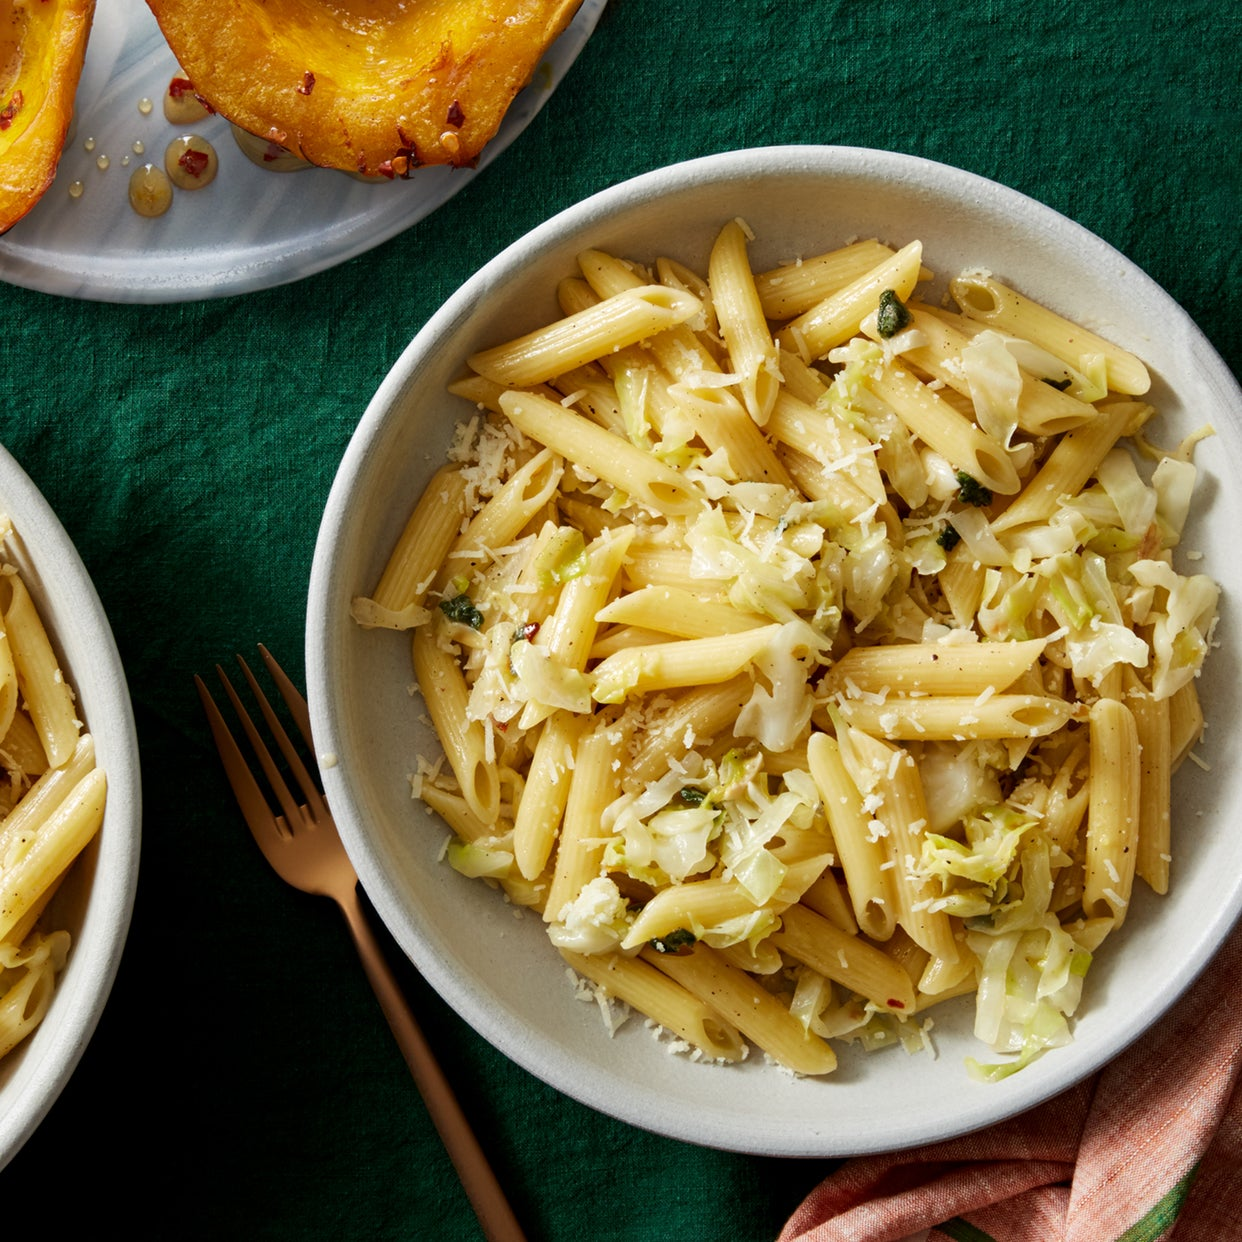 Cabbage & Sage Pasta with Roasted Acorn Squash & Hot Honey